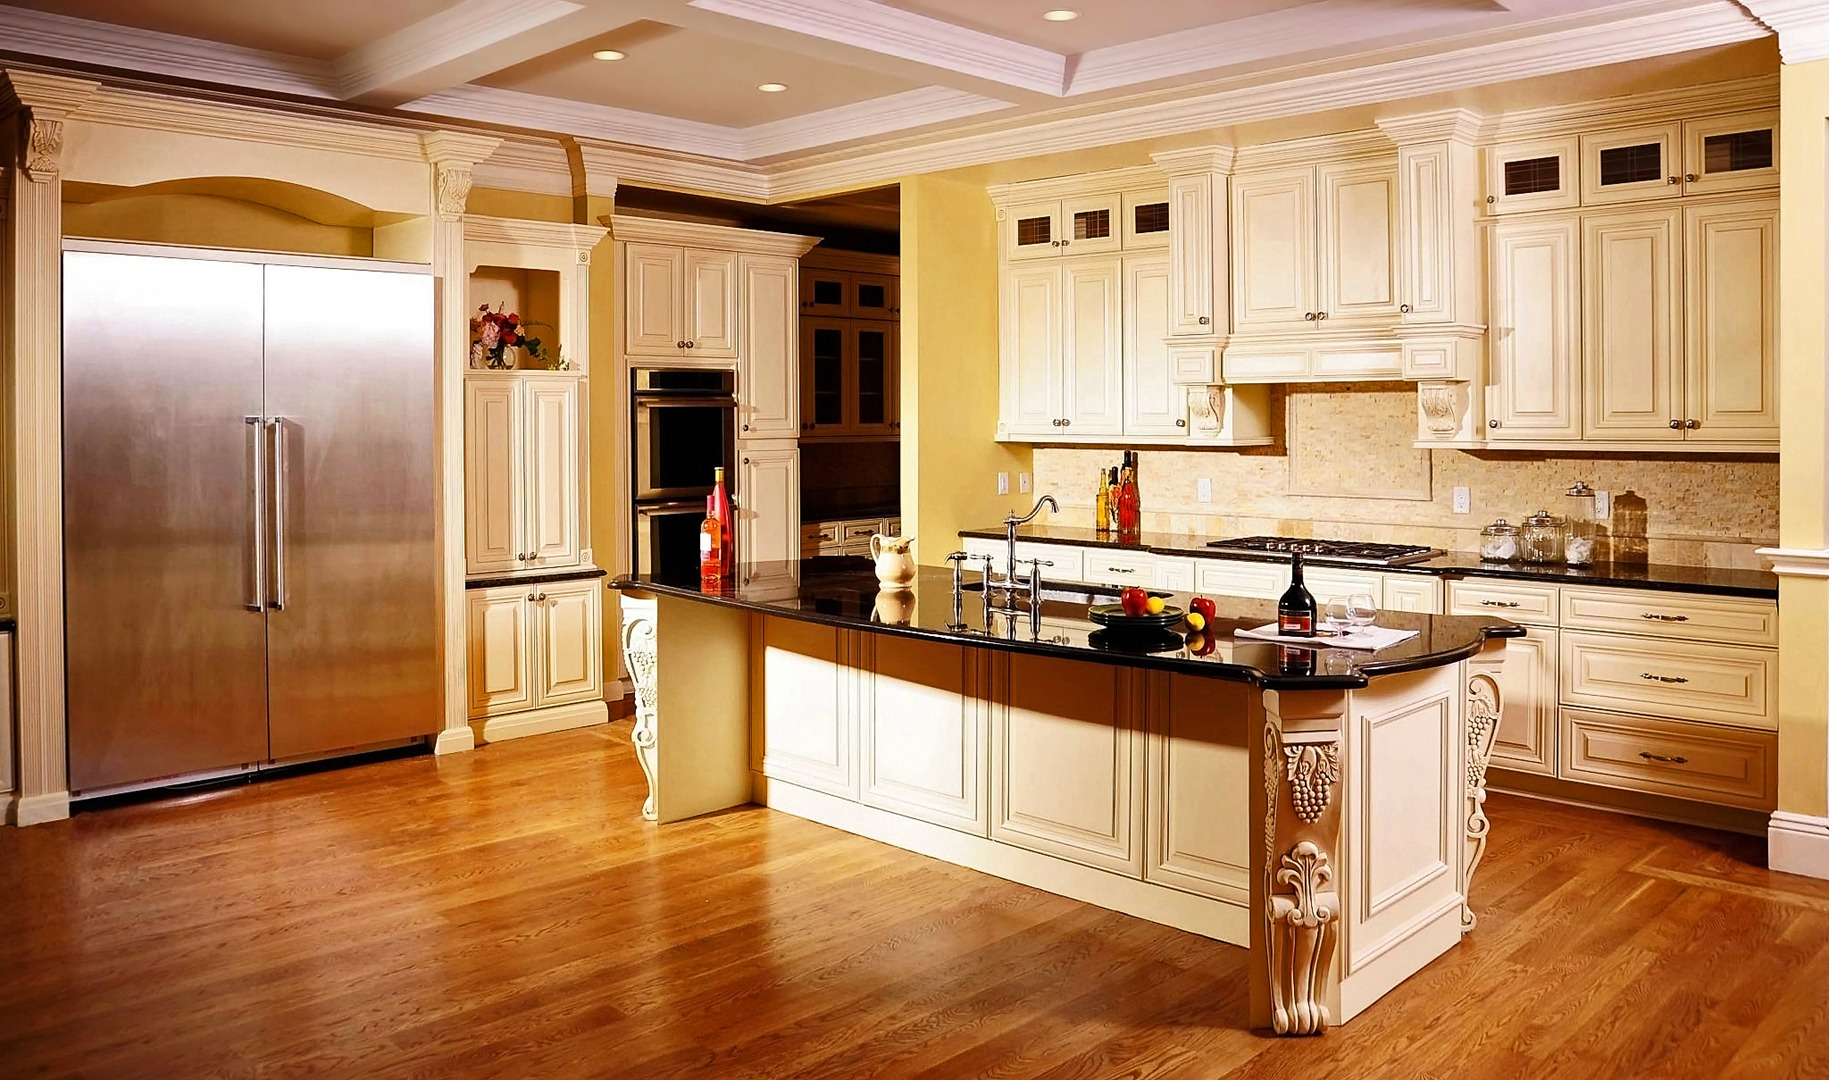 Kitchen Cabinets And Remodeling  Bathroom Cabinets And Remodeling   Designers Choice Cabinets And Countertops   Arvada  Co. Kitchen Cabinets And Remodeling  Bathroom Cabinets And Remodeling